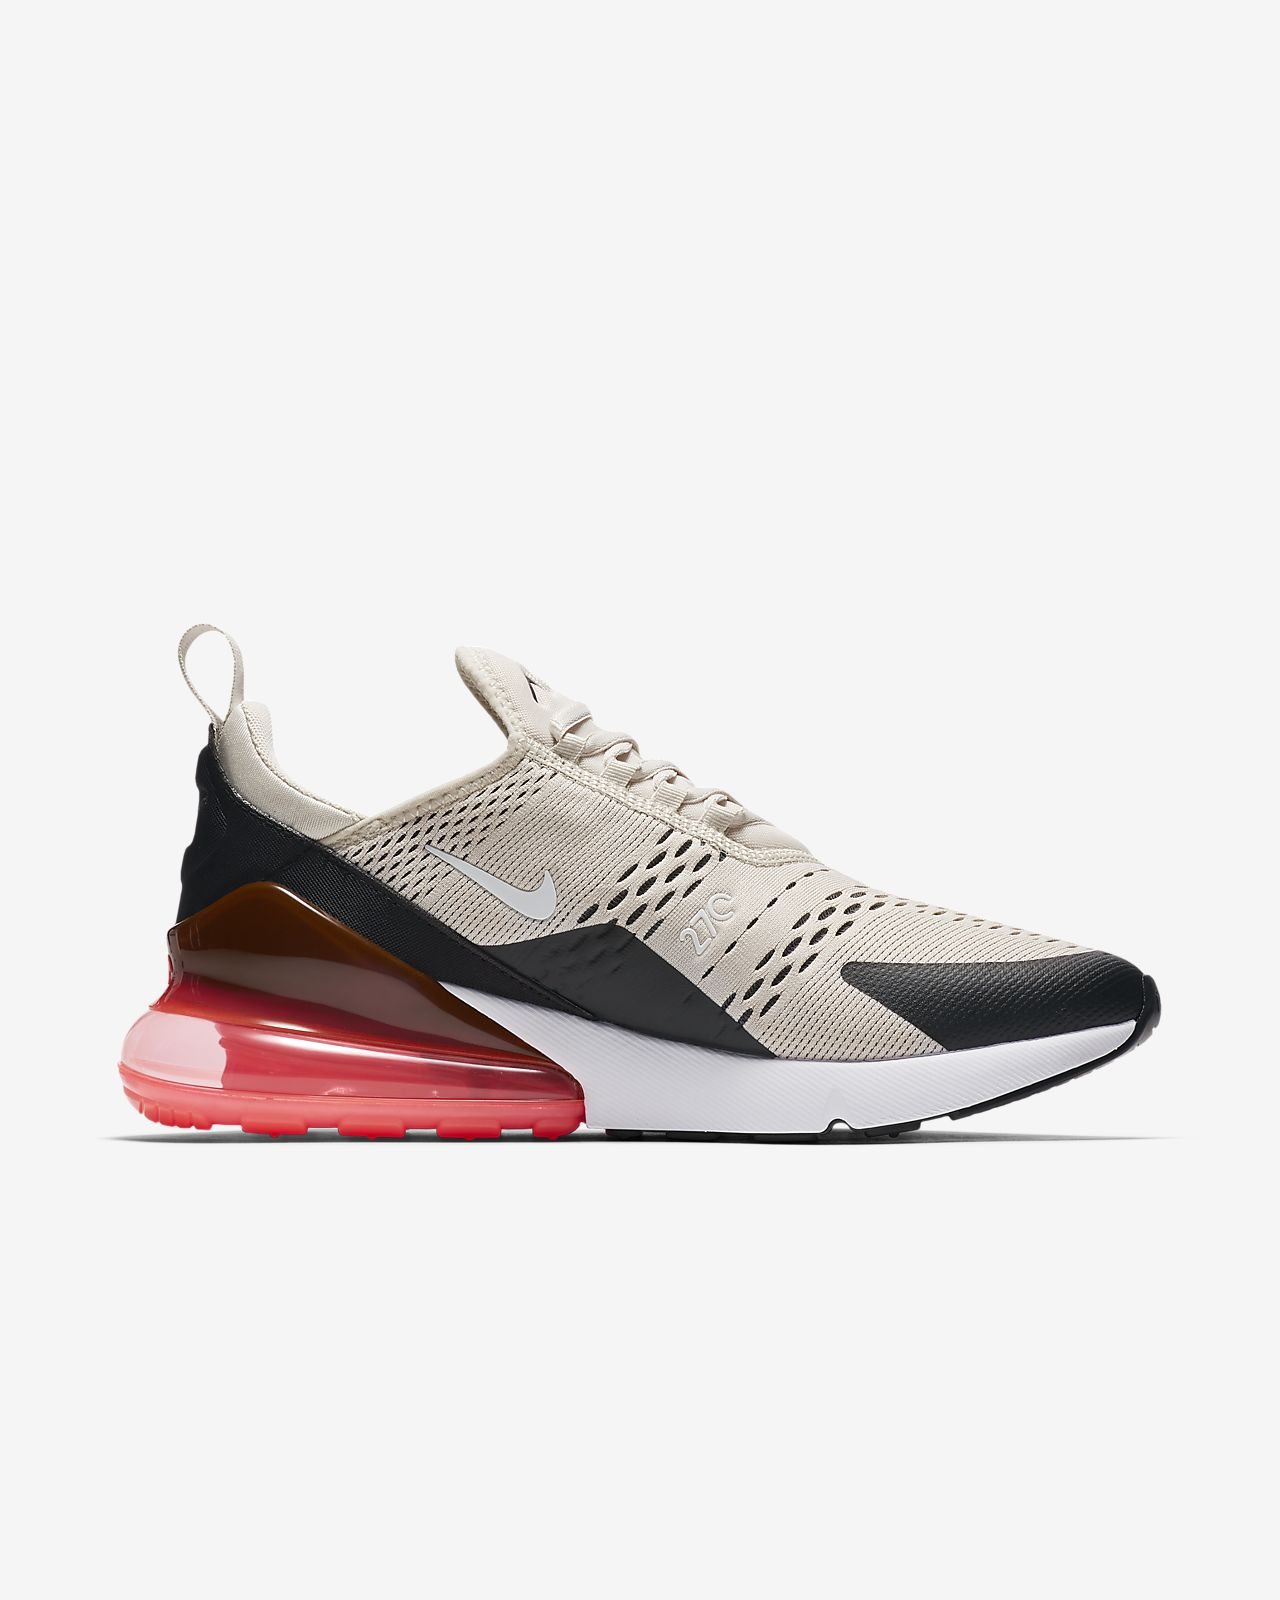 76c53eddeba8c Nike Air Max 270 Men's Shoe. Nike.com GB